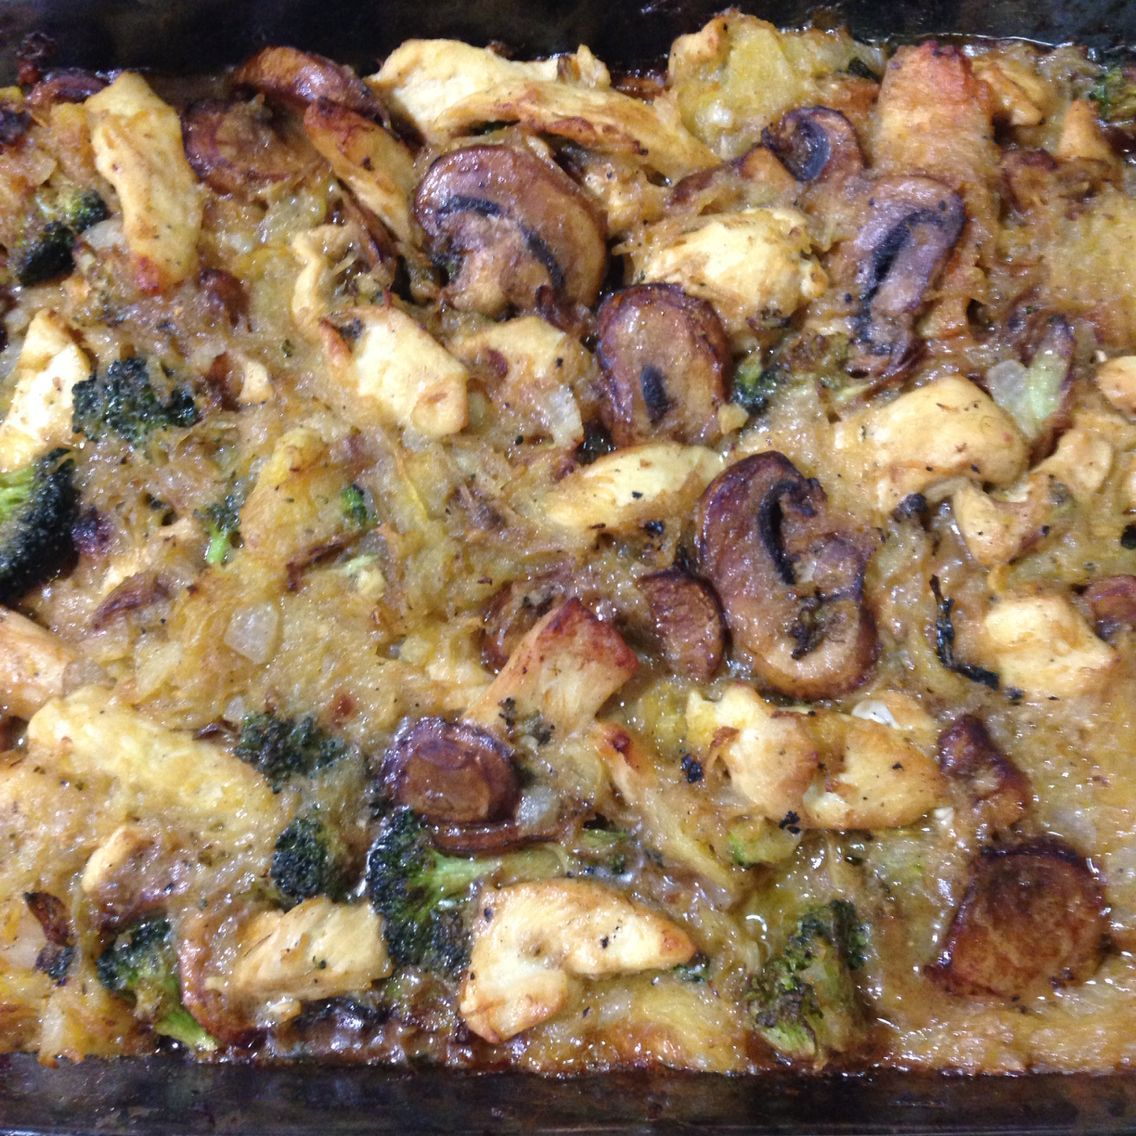 Spaghetti squash casserole with chicken, mushrooms, broccoli, onions, garlic and... - #Broccoli #Casserole #Chicken #Garlic #Mushrooms #onions #Spaghetti #Squash #stuffedspaghettisquash